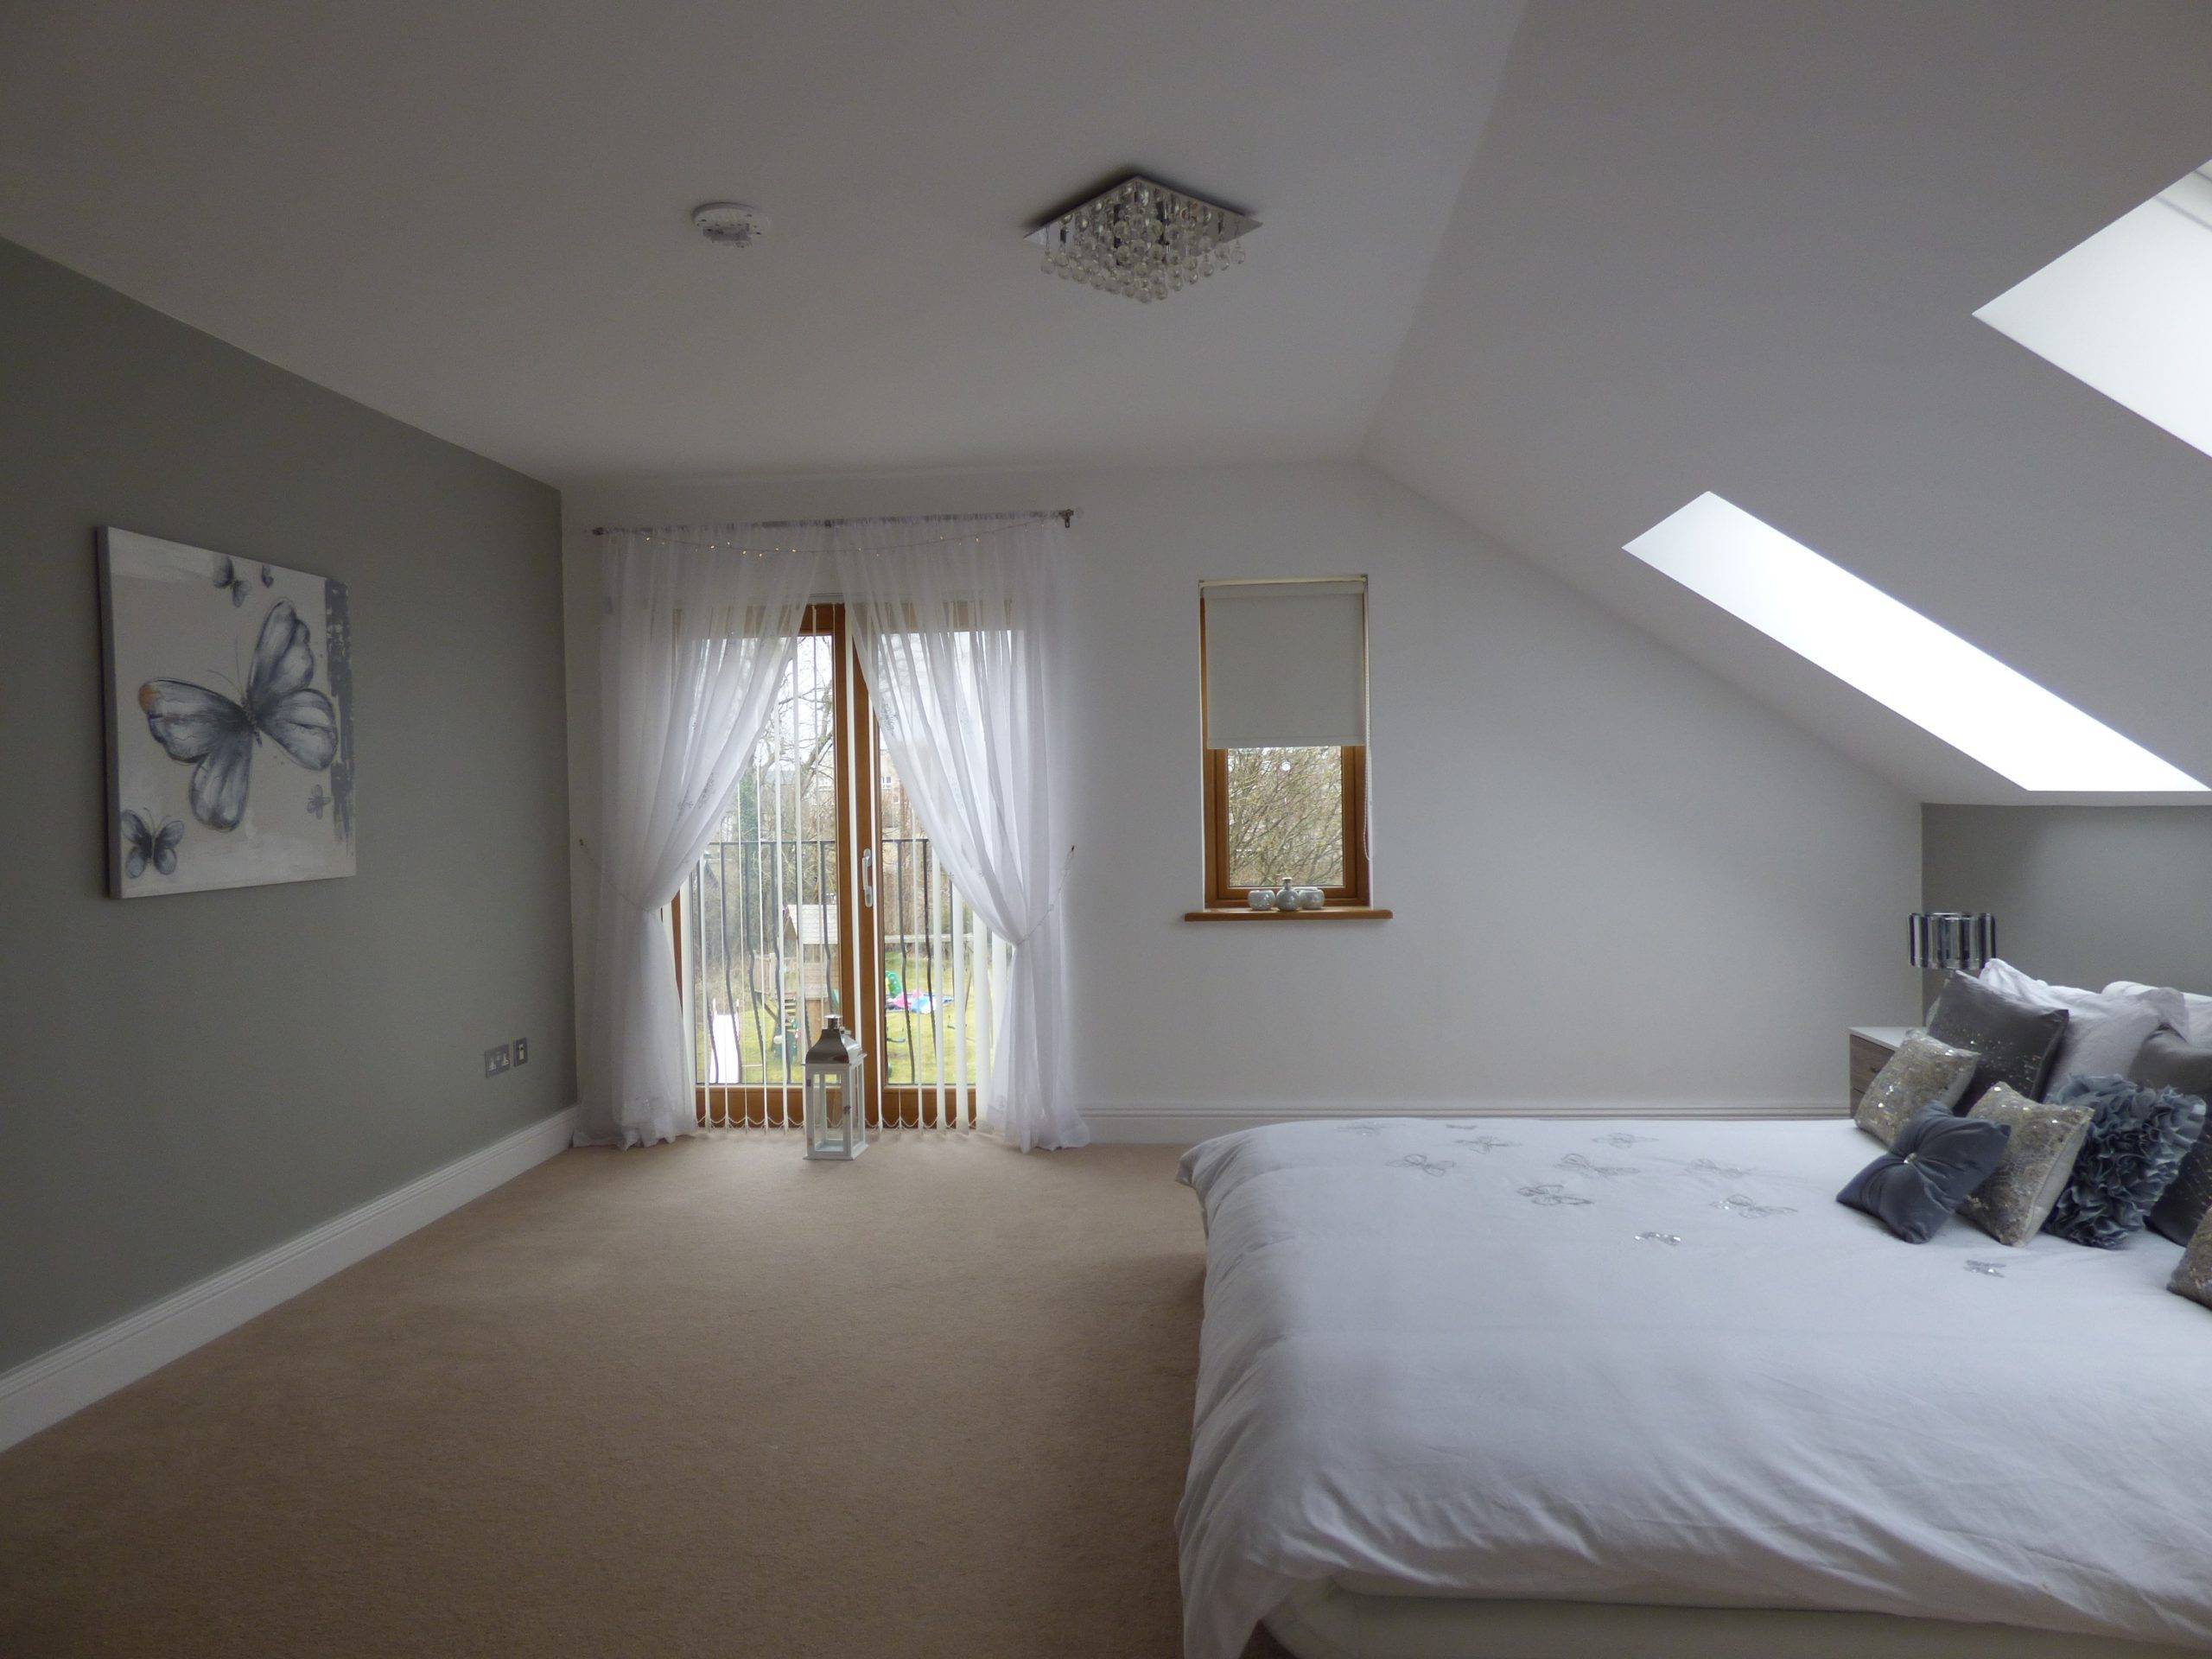 Spacious grey bedroom with large bed